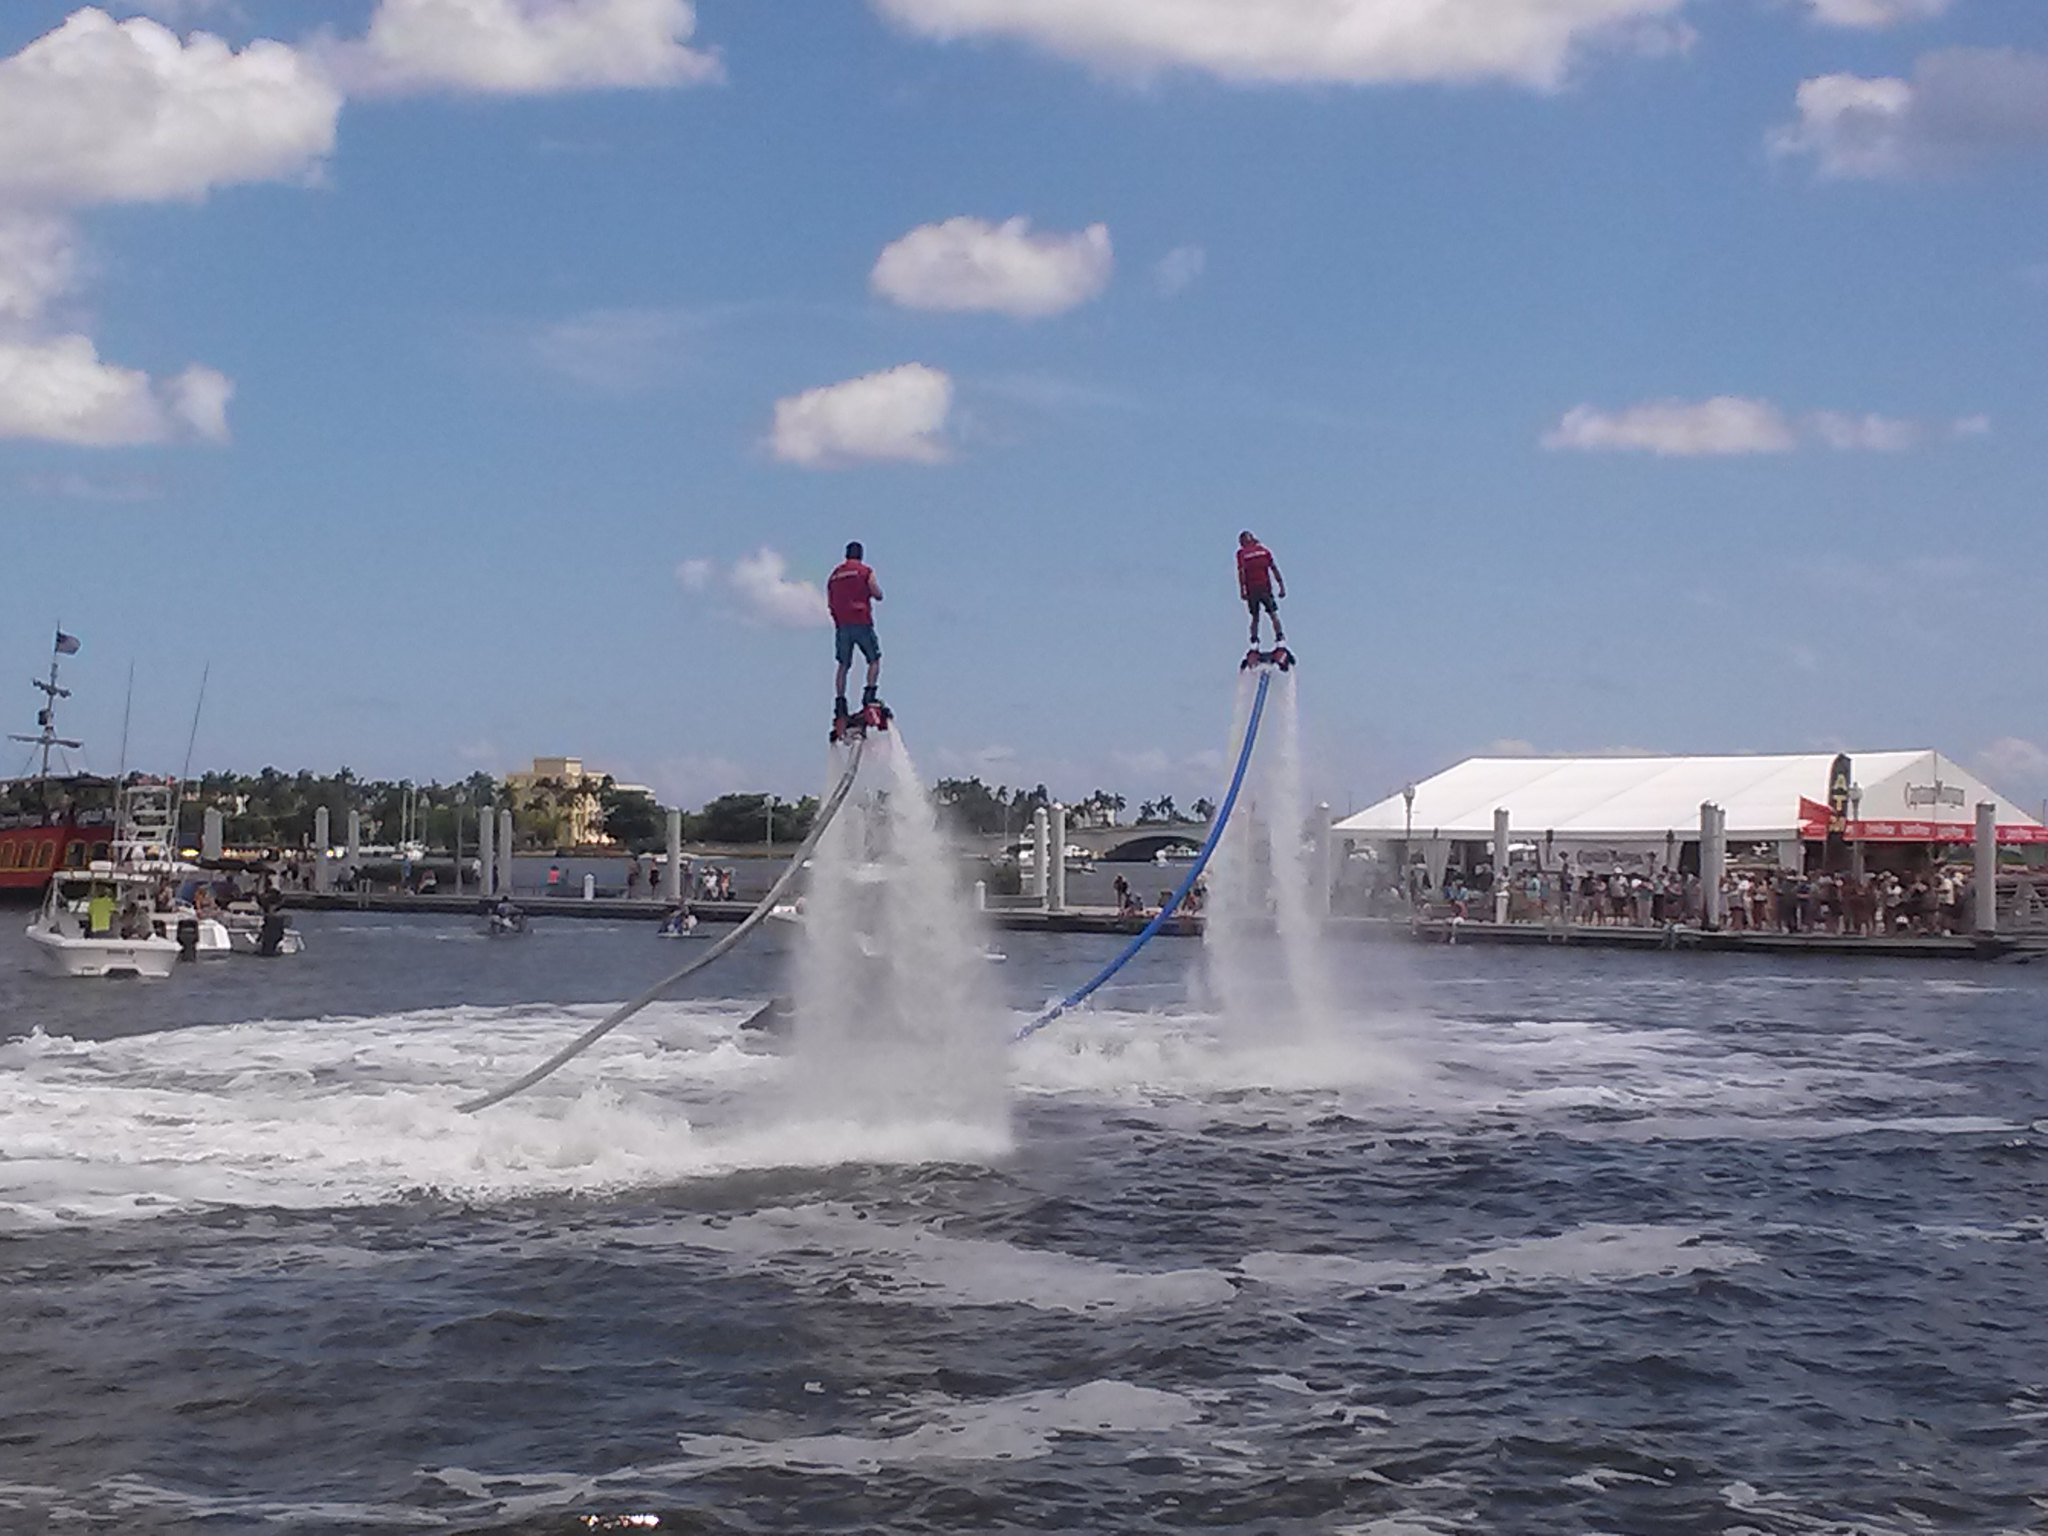 Flyboarding. photo credit: southfloridafoodandwine.com